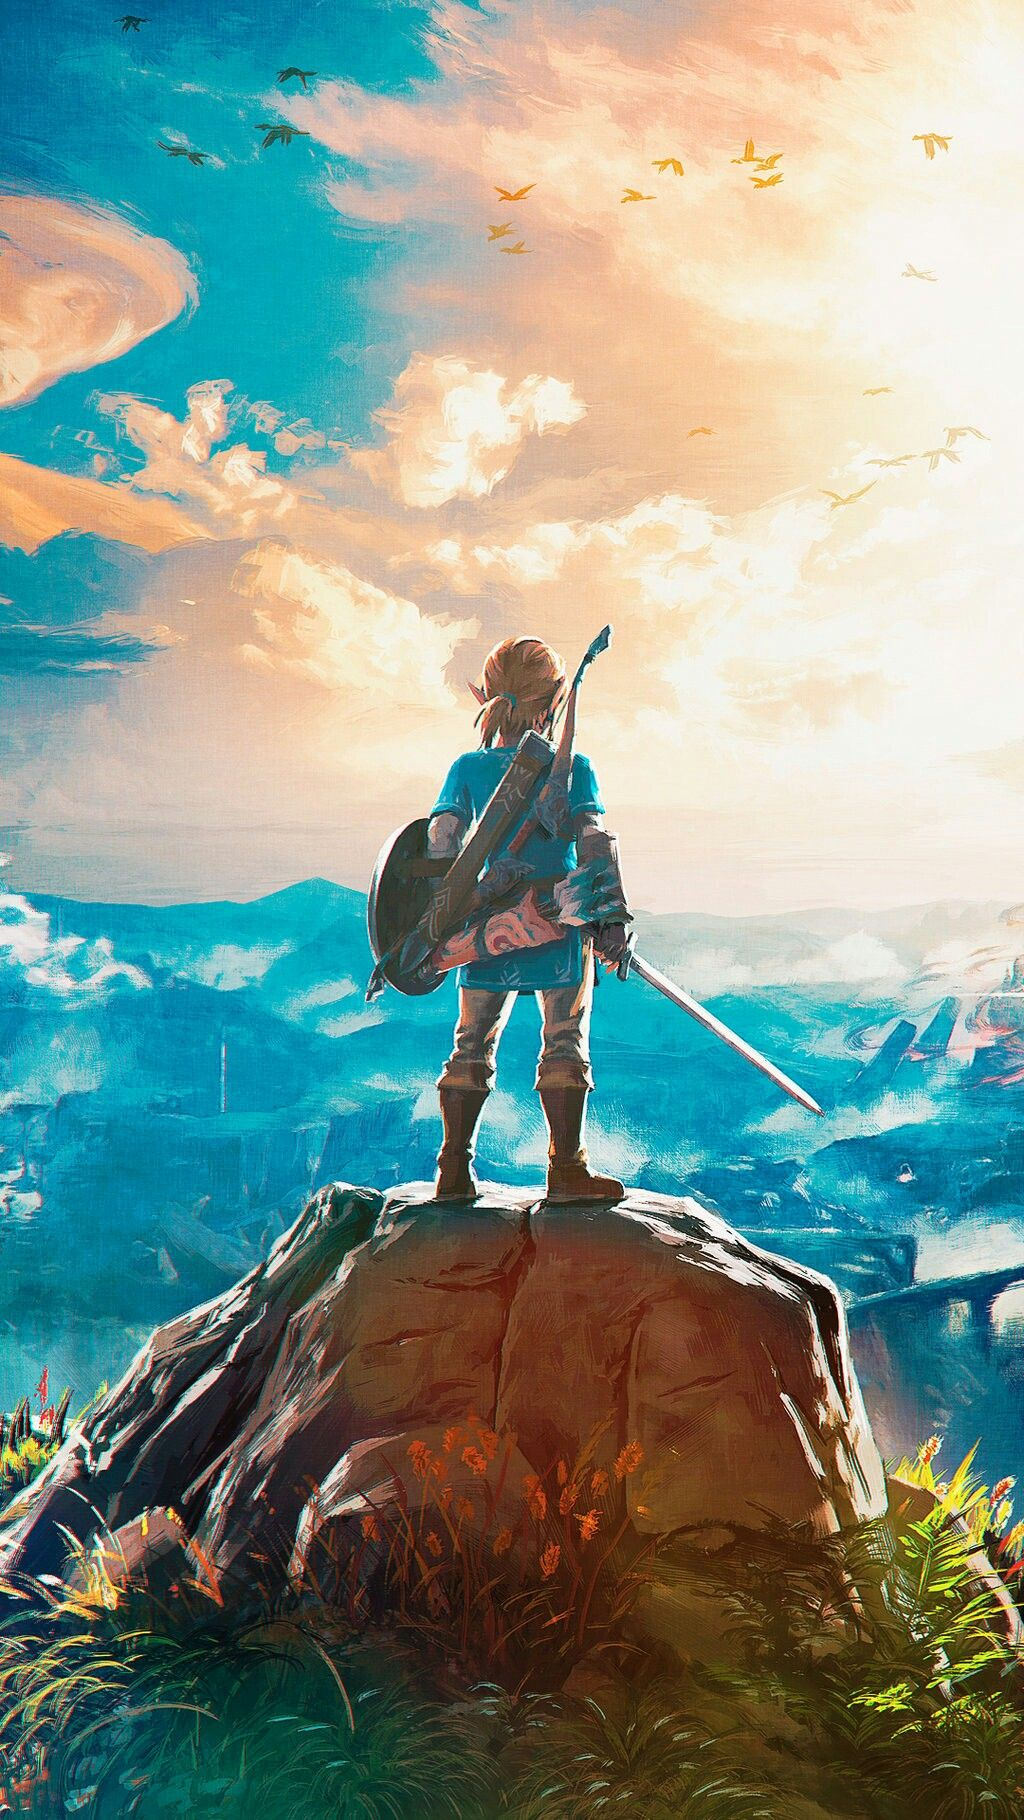 Link From Breath Of The Wild Nintendo Legendofzelda Xboxpsp Ppost 814307176344506751